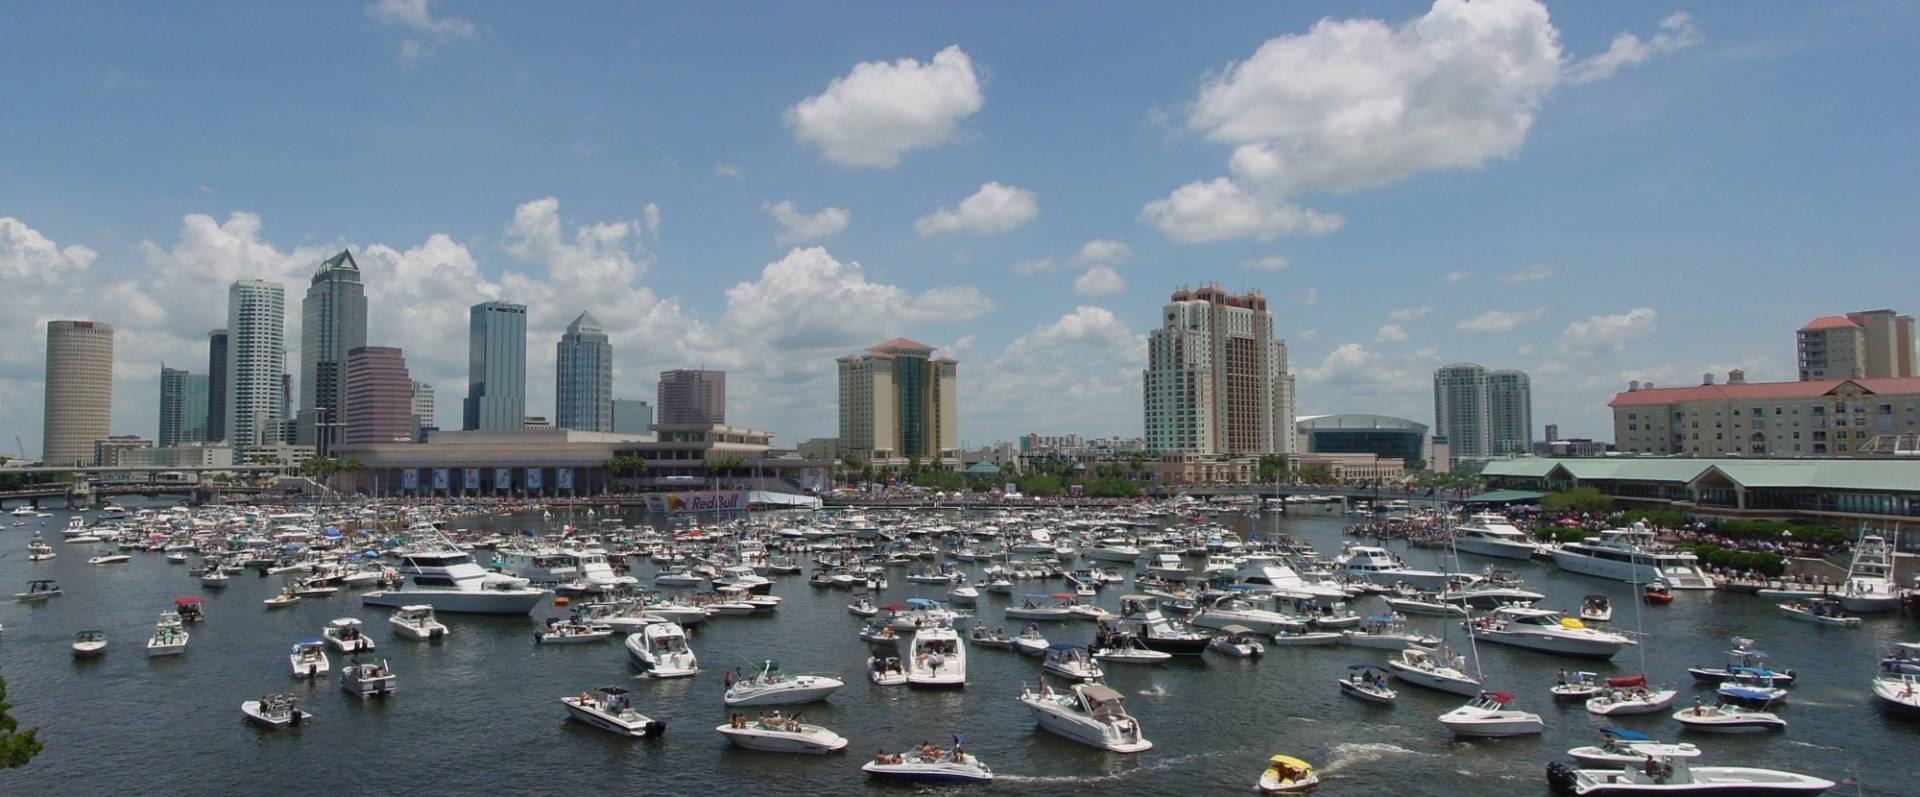 boats all in the Tampa Bay